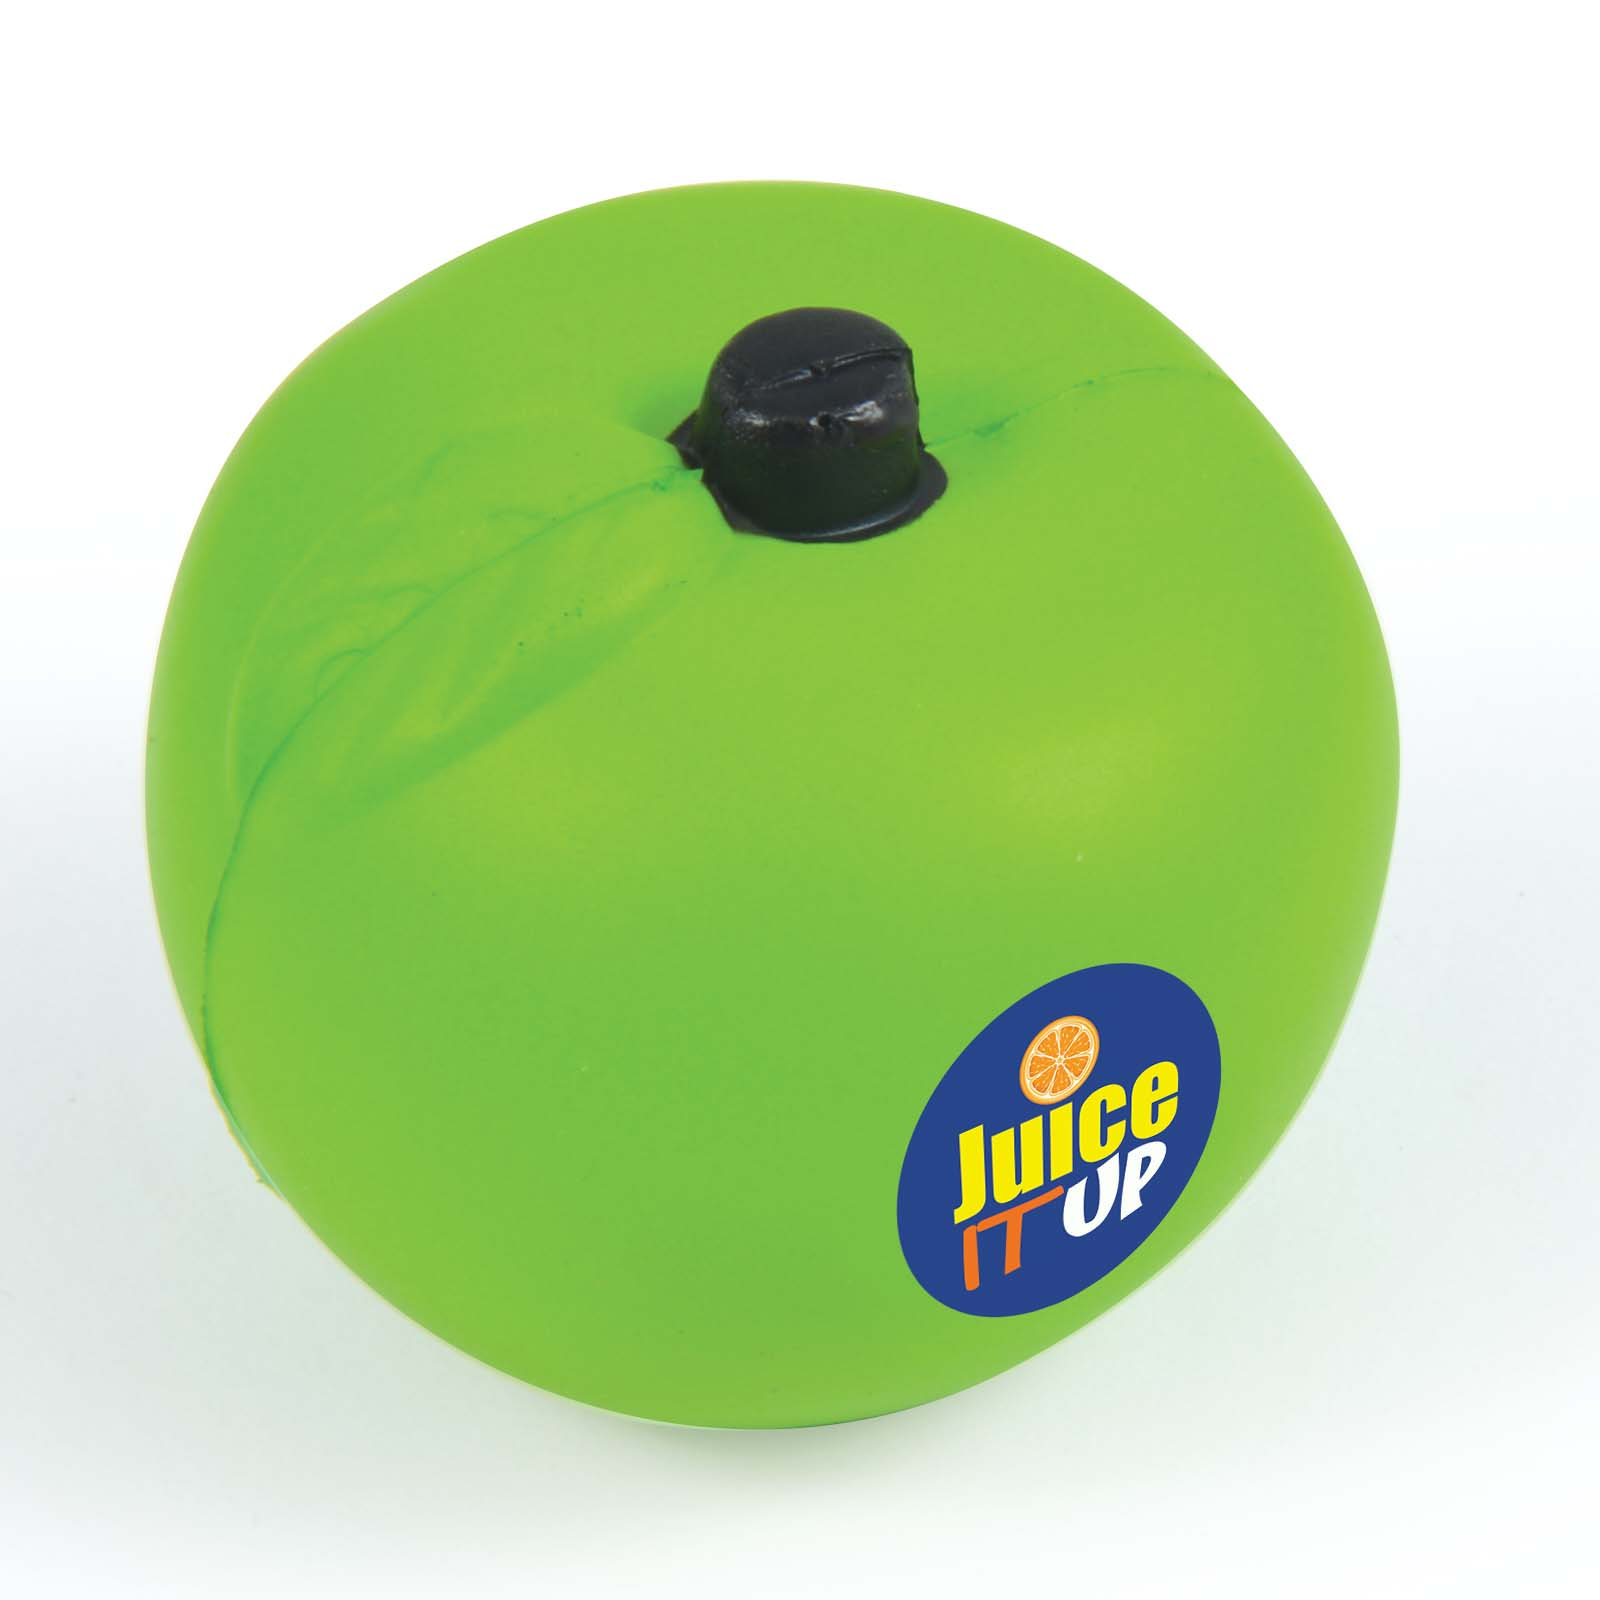 Apple Stress Reliever - Includes a 1 colour printed logo